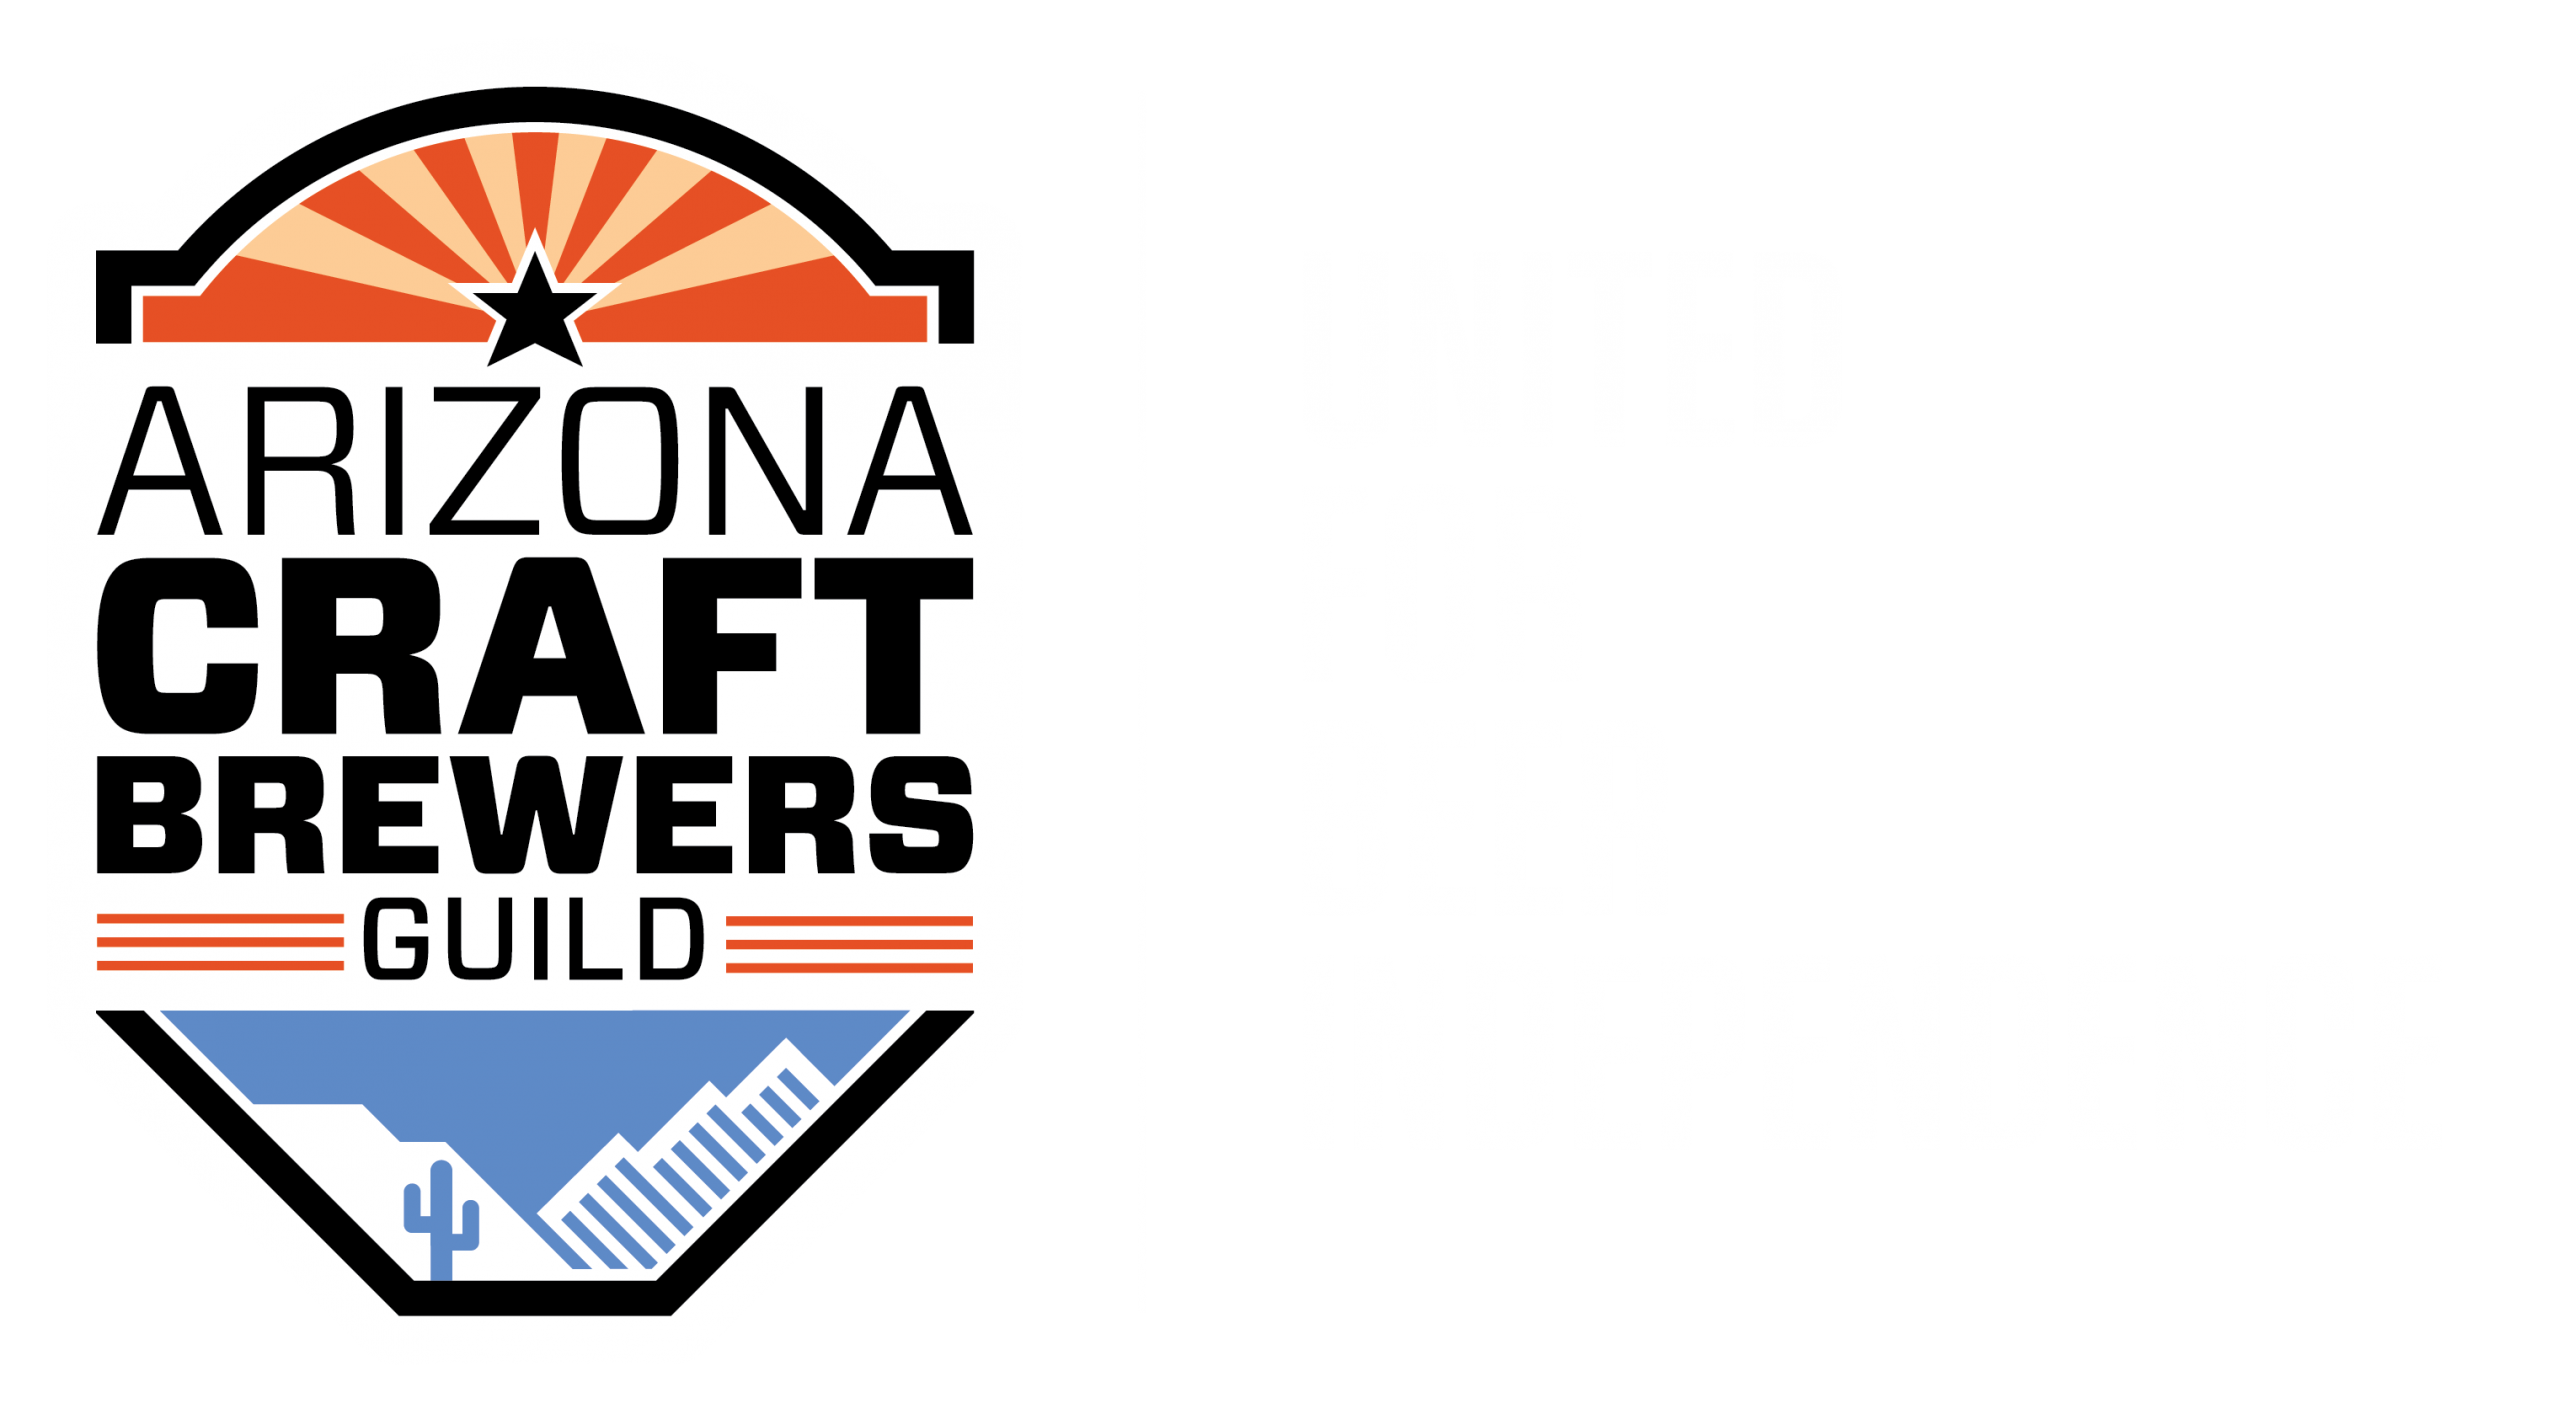 Edge of the World Brewery | Arizona Craft Brewers Guild